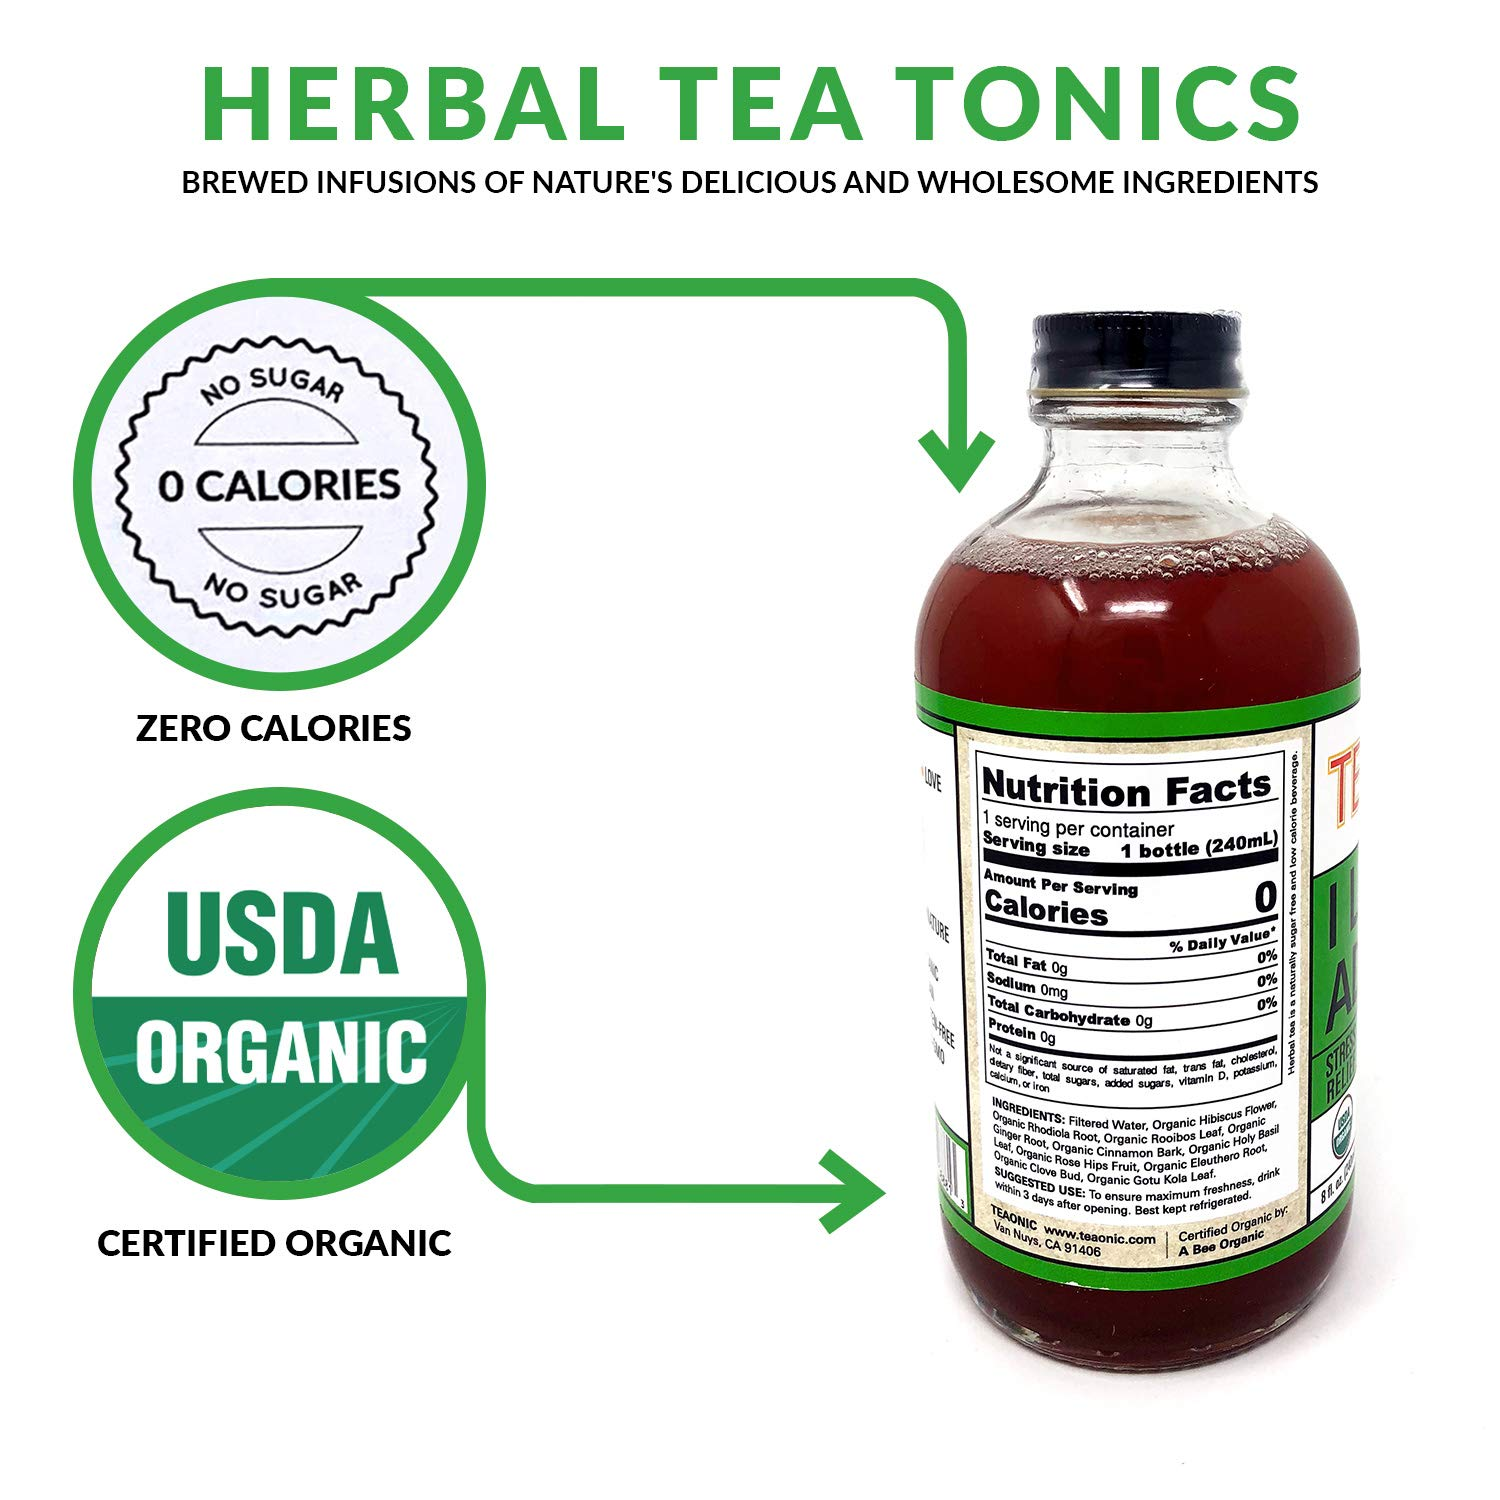 Teaonic Herbal Tea | I Love my Adrenals to Relieve Stress | Cinnamon, Clove & Ginger (12 Pack) by Teaonic (Image #4)